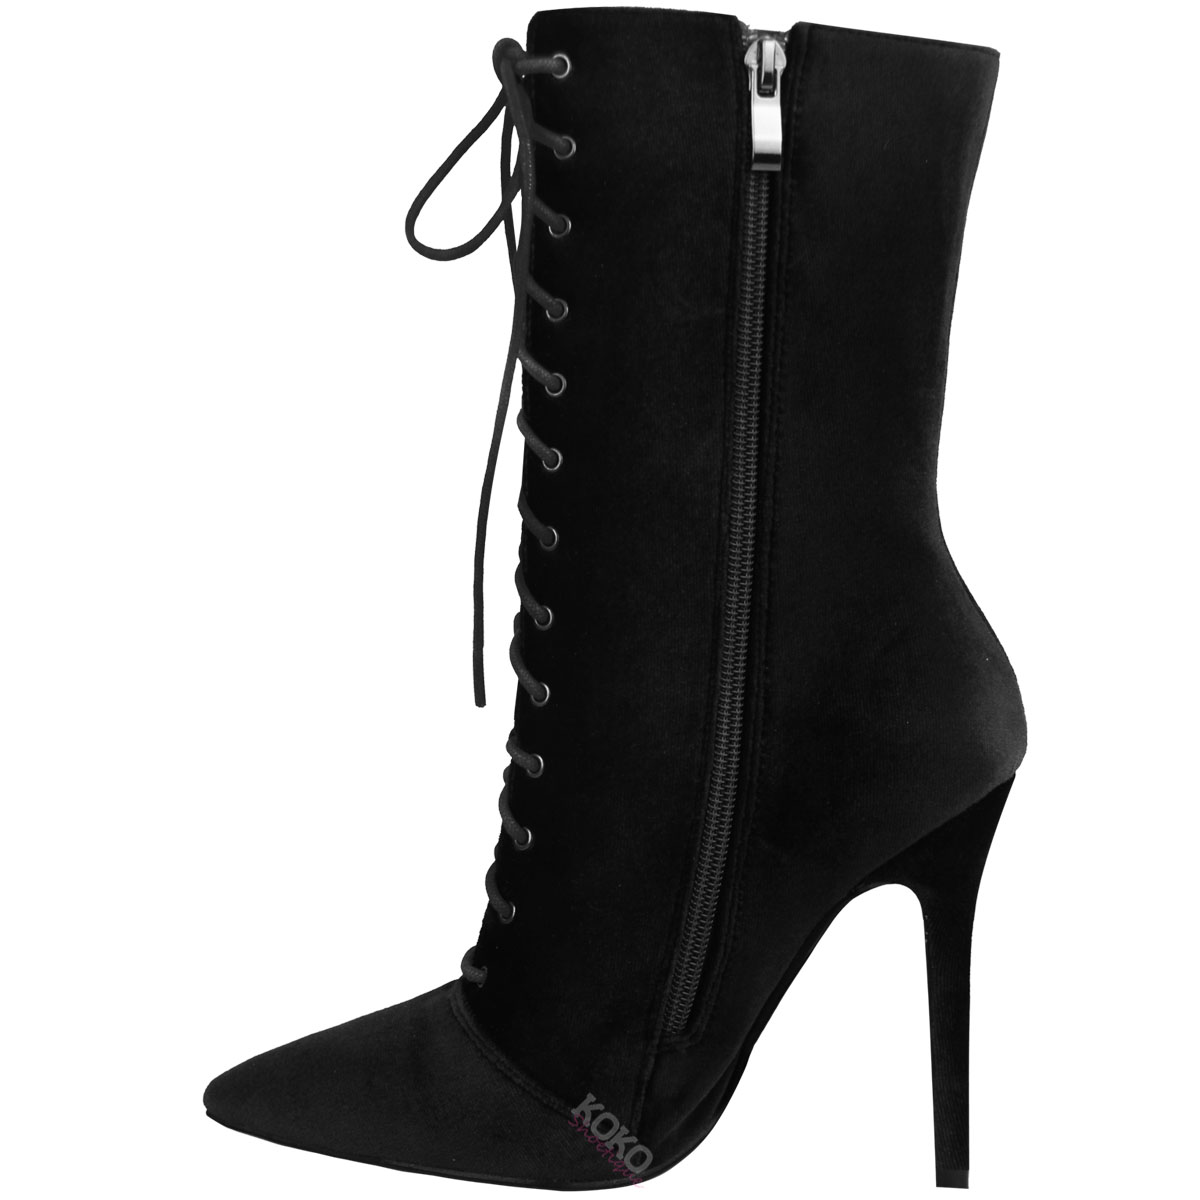 Ladies Womens Lace Up Stretchy High Heel Stiletto Ankle Boots ...